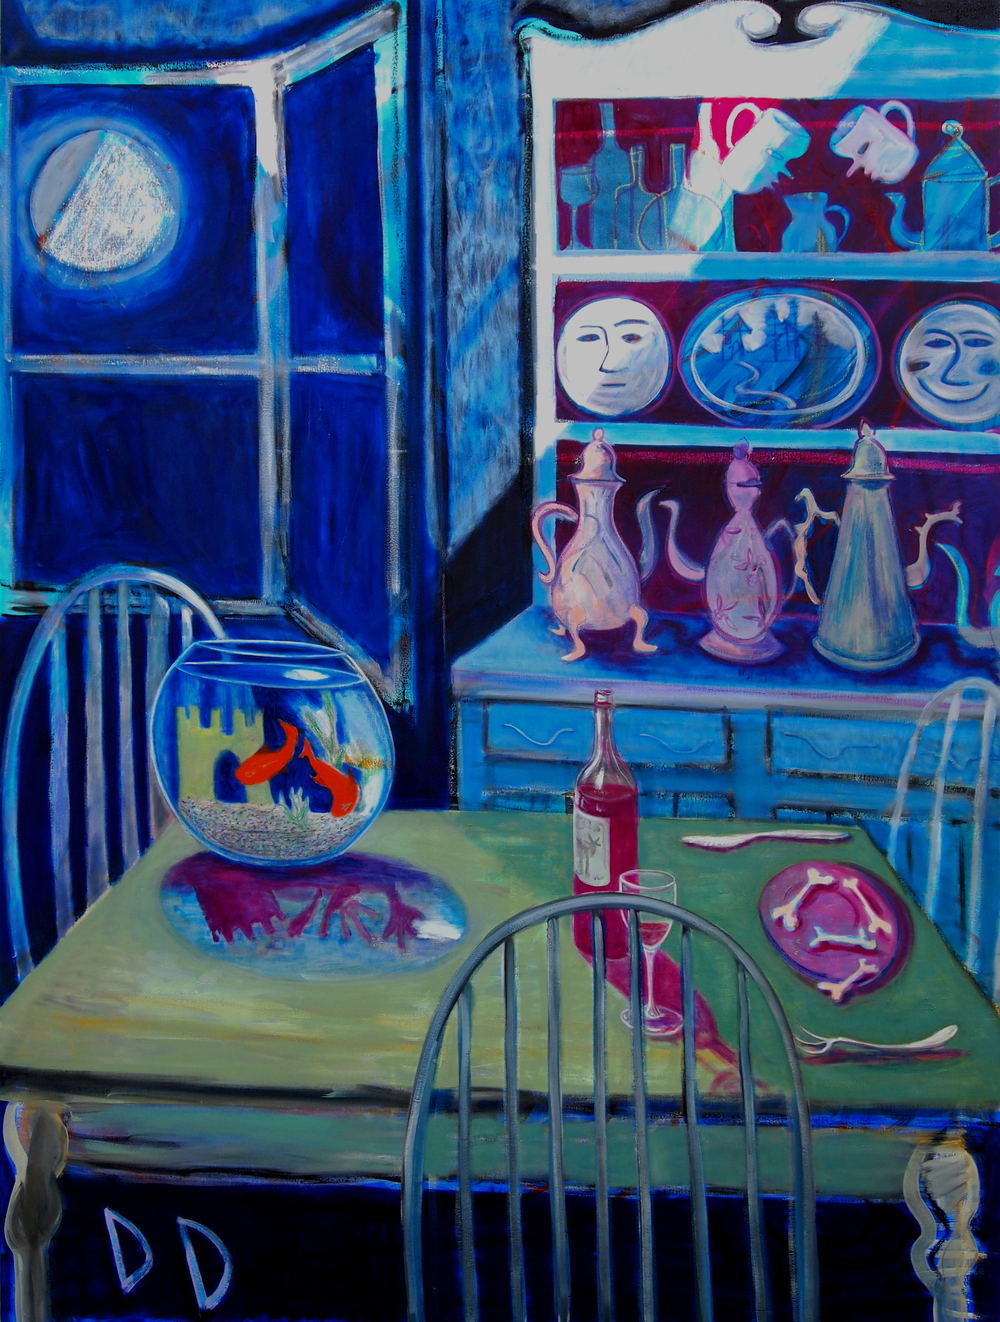 Moon in a Blue Room  Oil on Linen  150 x 200cm